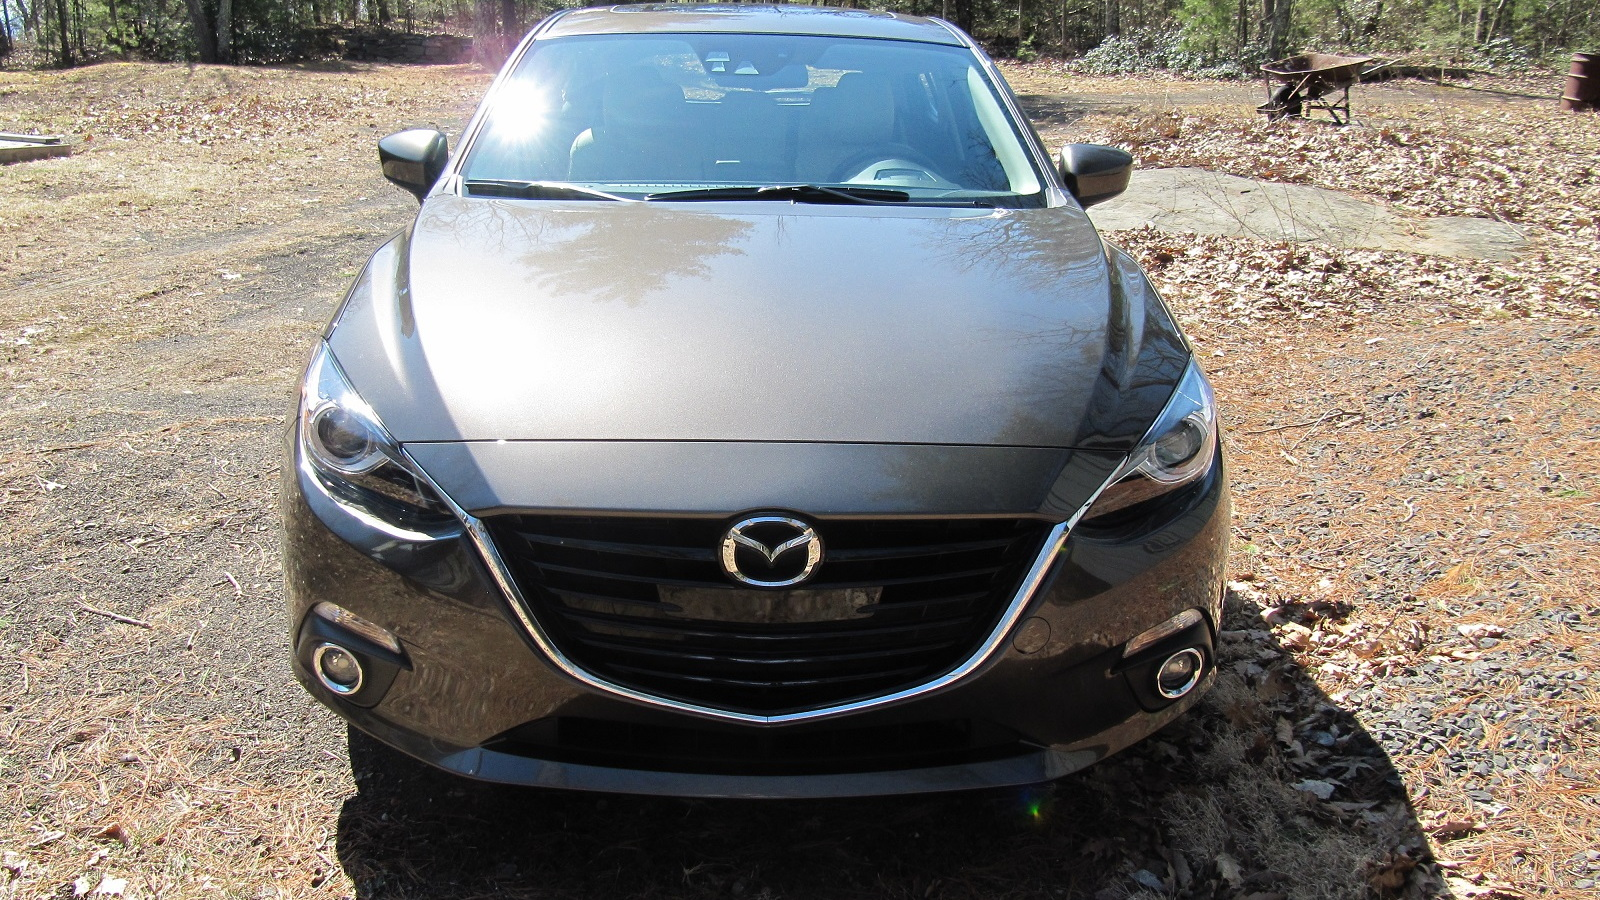 2014 Mazda 3, Catskill Mountains, NY, Apr 2013